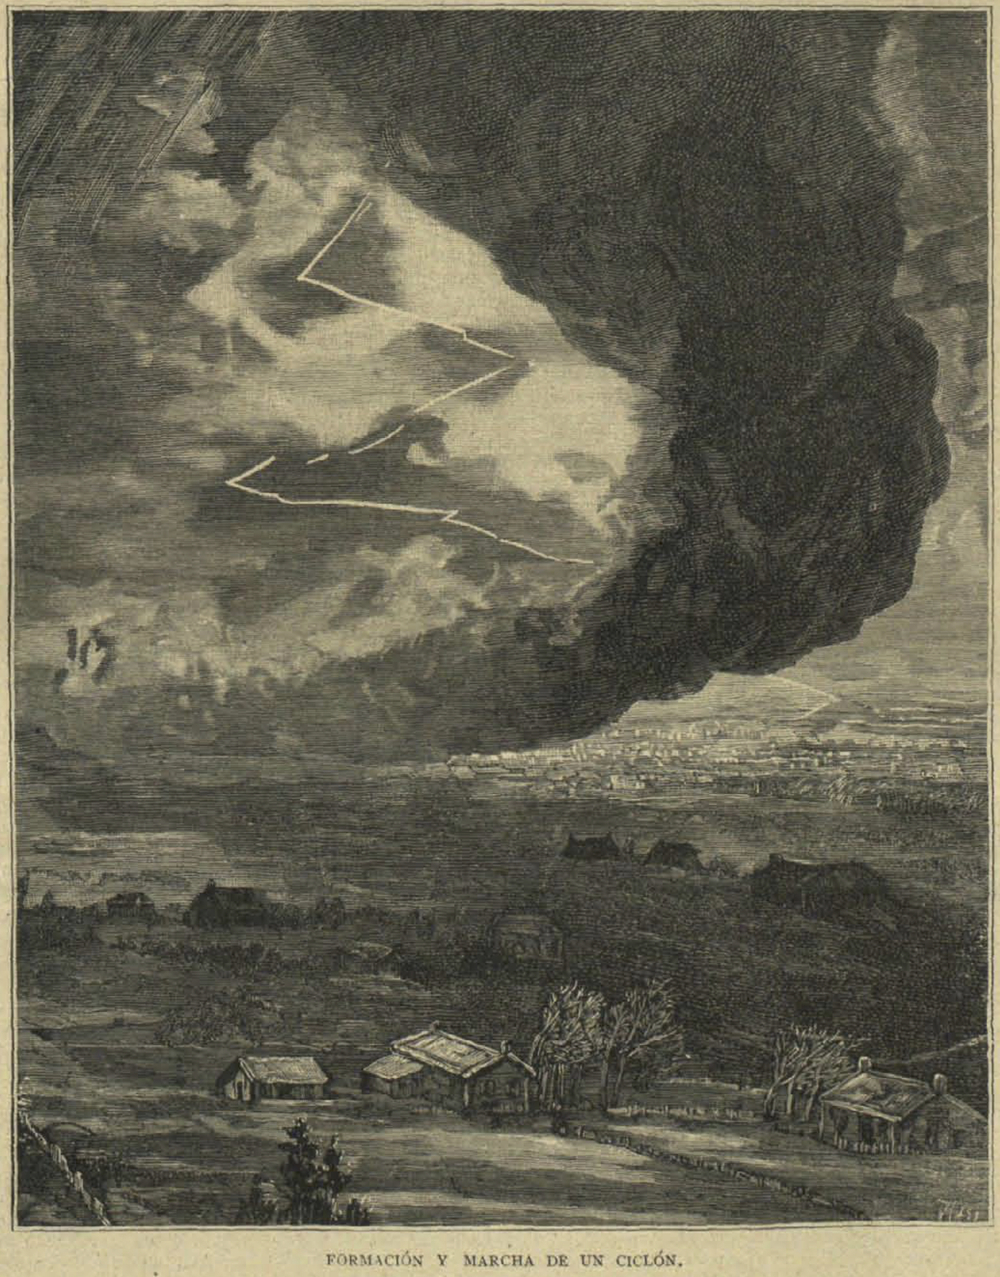 An idealised depiction of the F3 tornado that hit Madrid (Spain) on 12 May 1886 causing extensive damages.  The Madrid tornado  is the deadliest (47 fatalities) tornado that occurred in Spain since 1800.   References:  Gayà, Miquel, 2007: The 1886 tornado of Madrid.   Atmos. Res.  ,    83 , 201-210.  [ PDF ]     Source:  depictions from  La Ilustración católica  (25 May 1886) [  PDF  courtesy of  B   iblioteca Nacional de España ]   depictions of the damages can also be found in   La Ilustración Española y Americana   (22 June 1886) [ PDF  courtesy of  B   iblioteca Nacional de España  ]